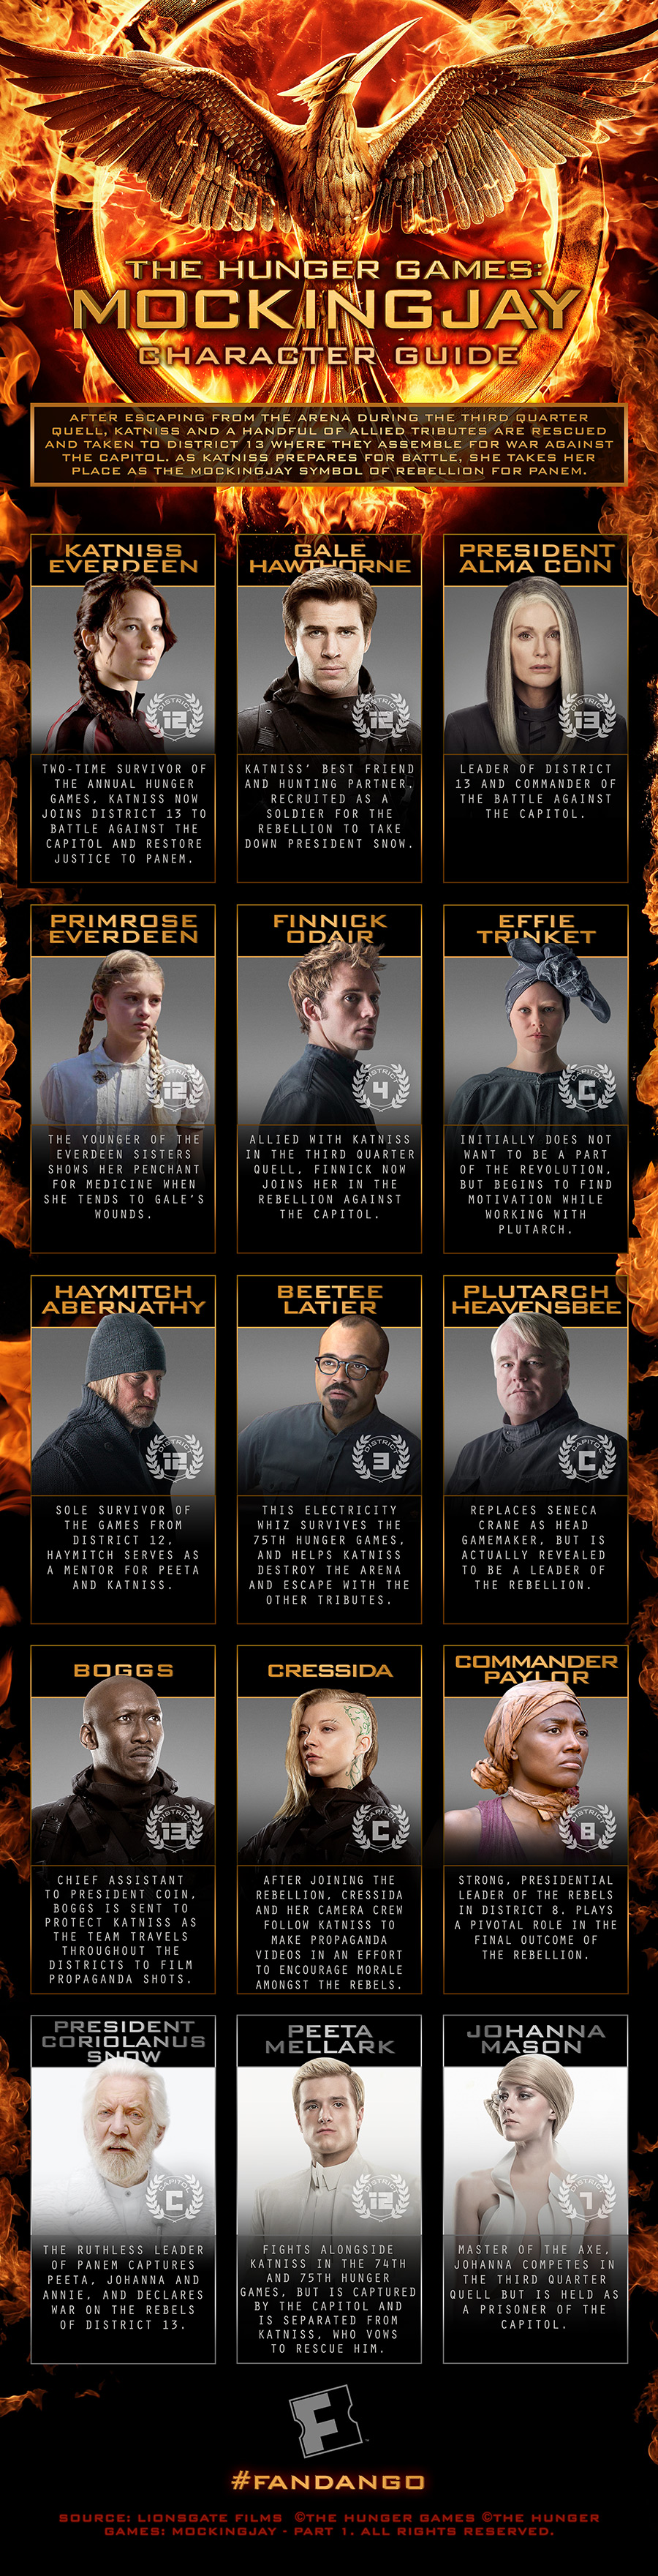 characters from hunger games movie